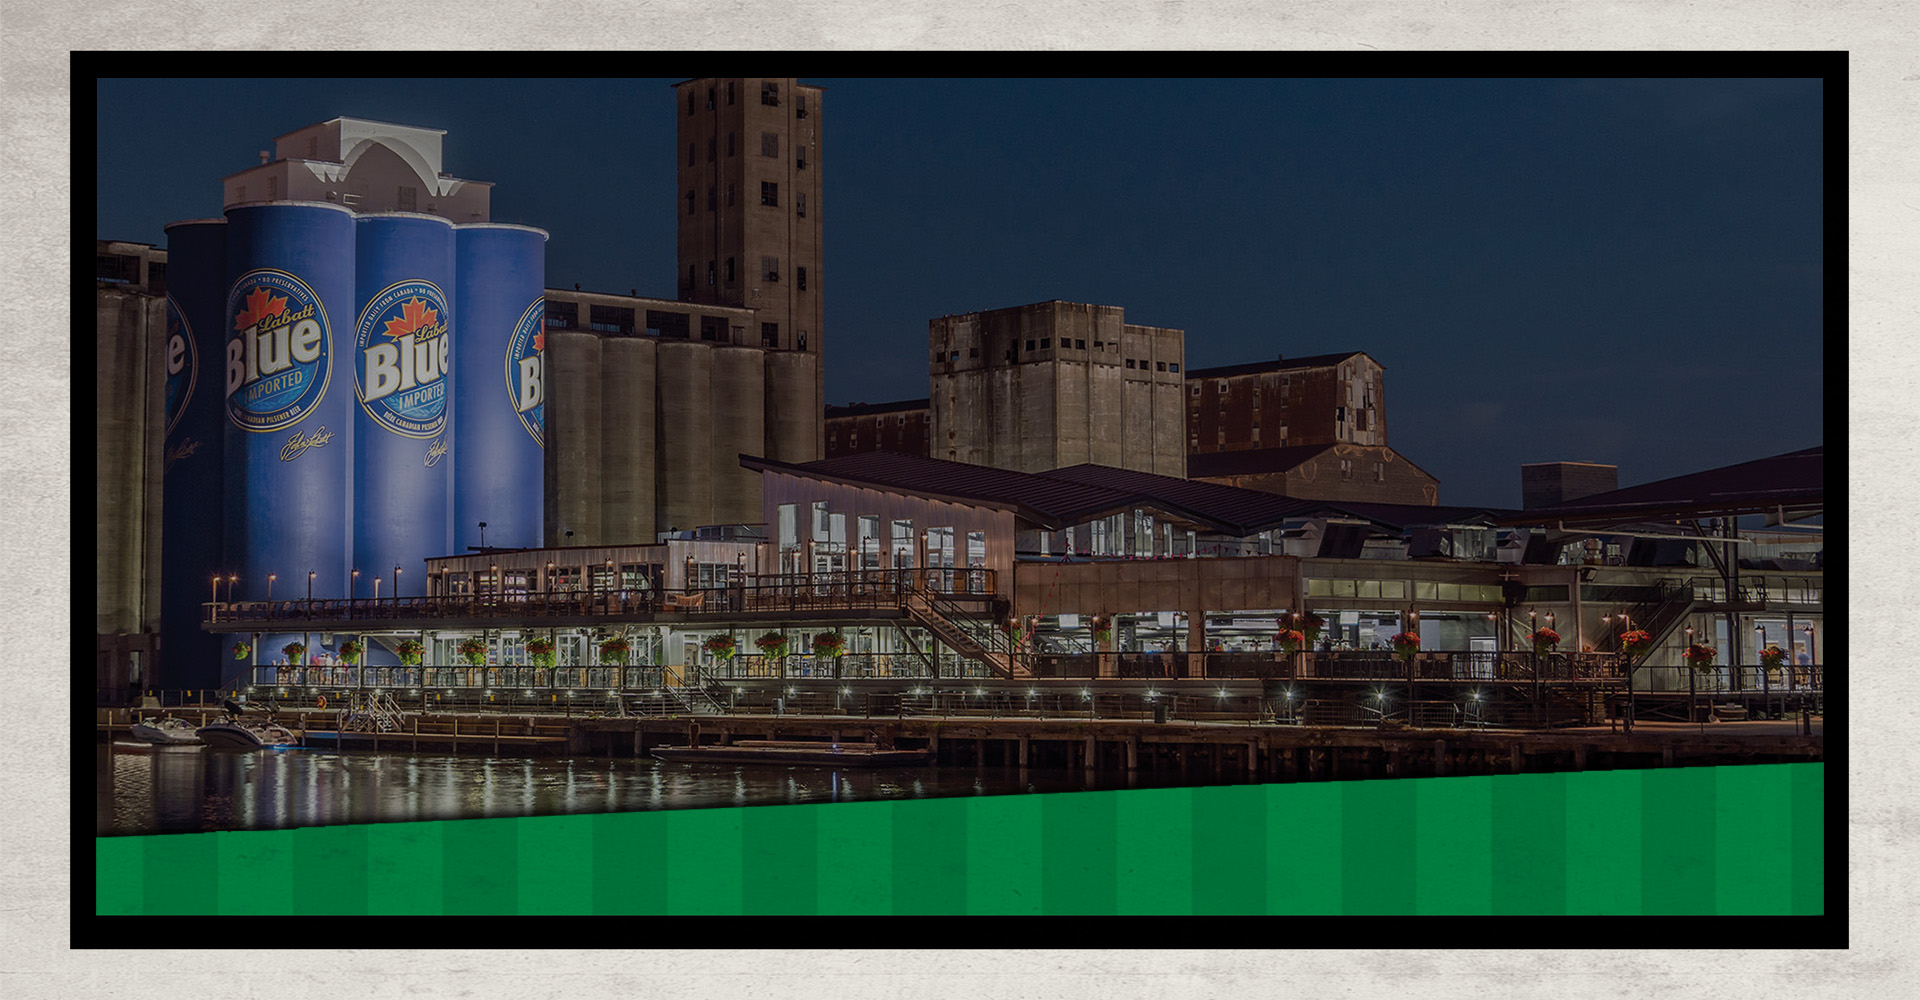 buffalo riverworks massive waterfront complex for skating hockey curling concerts with. Black Bedroom Furniture Sets. Home Design Ideas